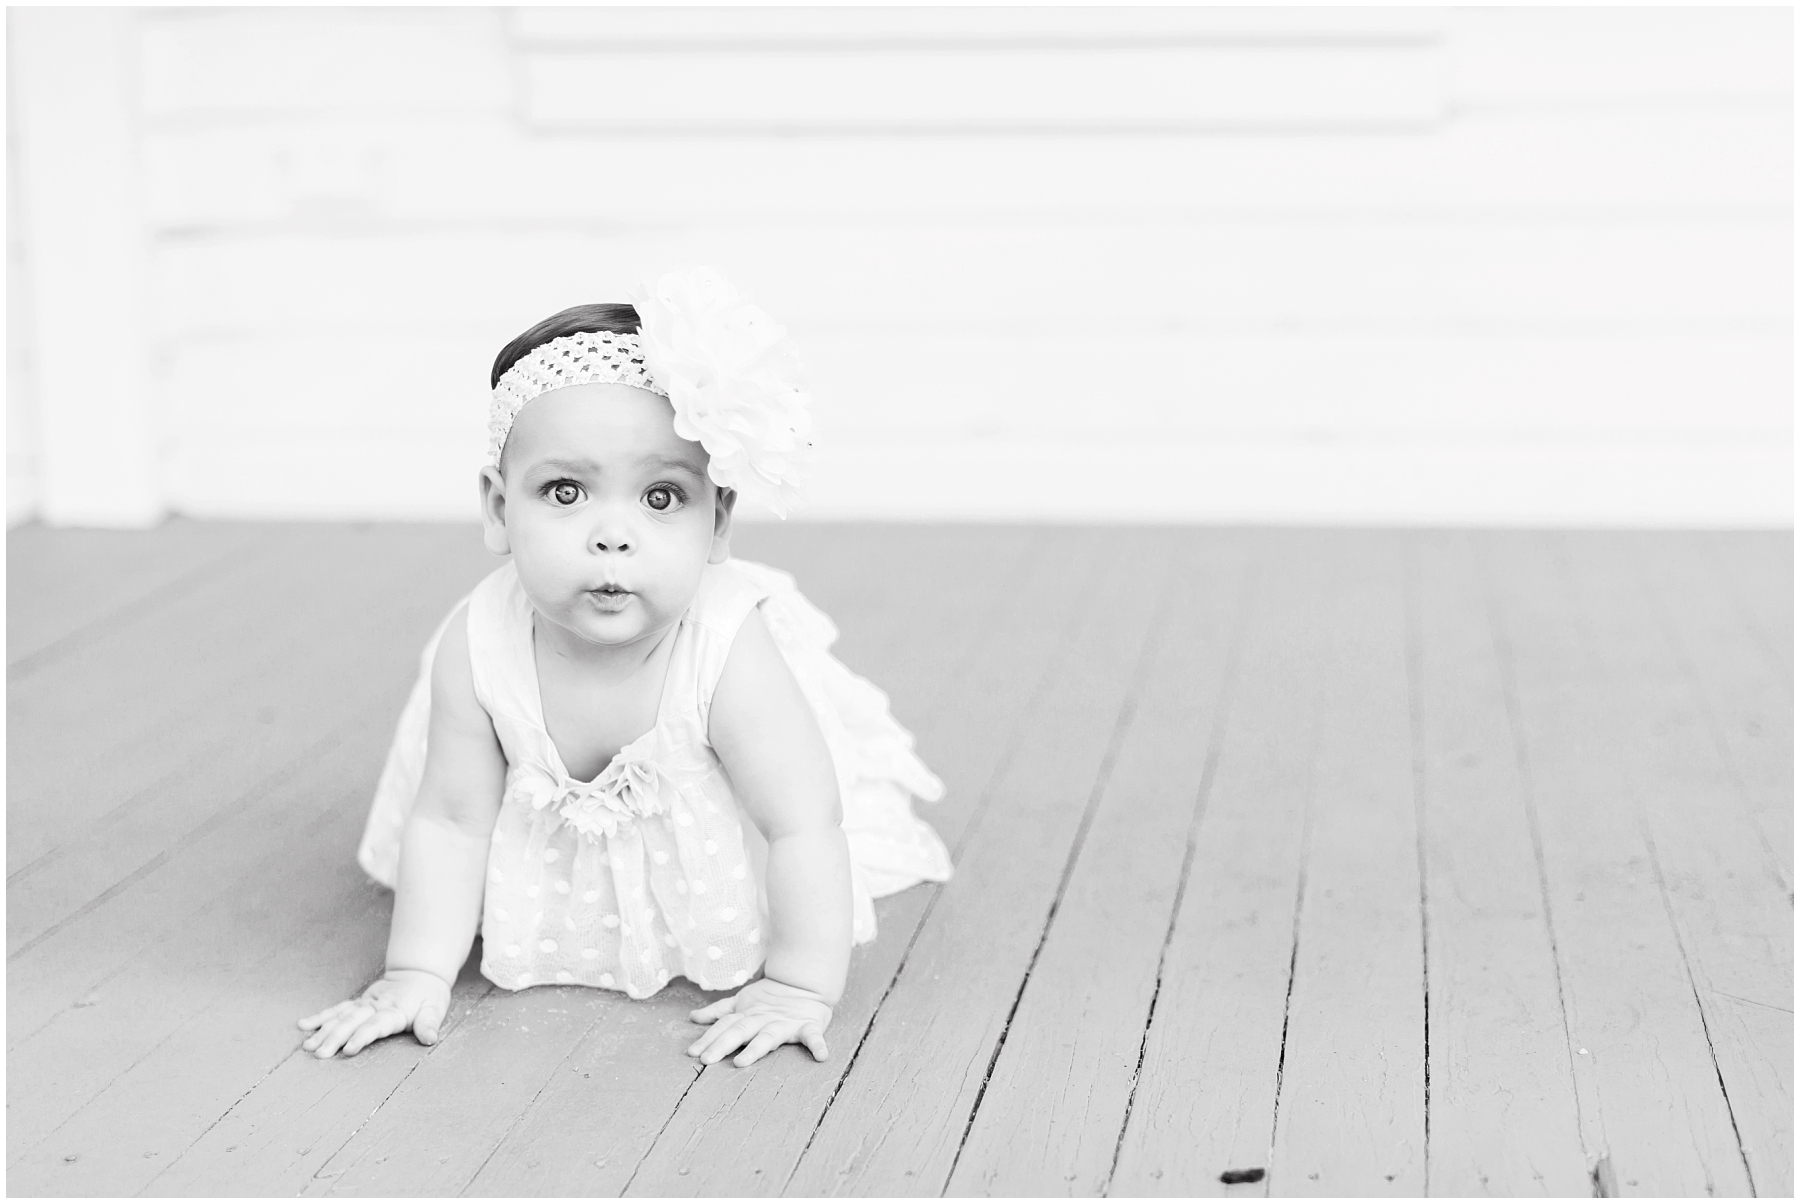 Katy Tx Child Photography - 1 year old 11